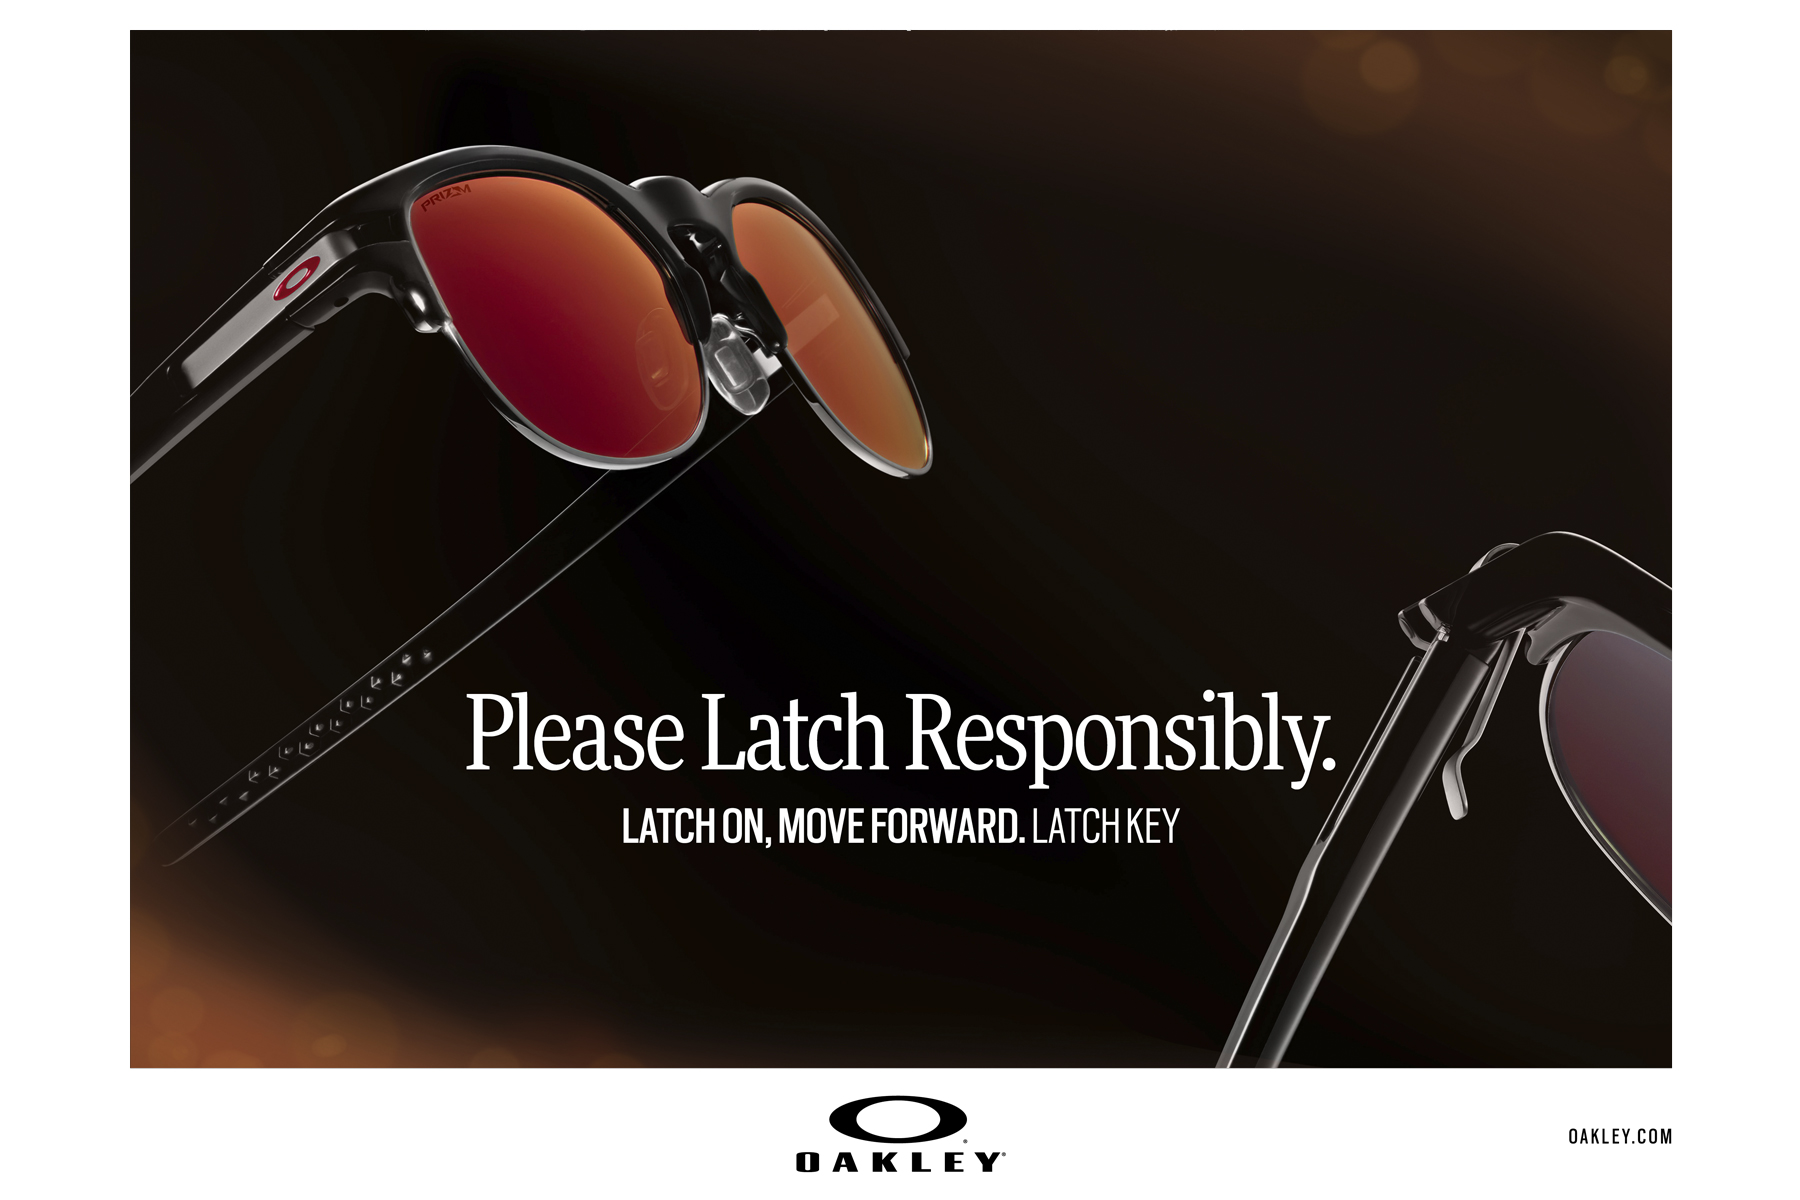 Oakley_PLEASE-LATCH-RESPOSIBLY